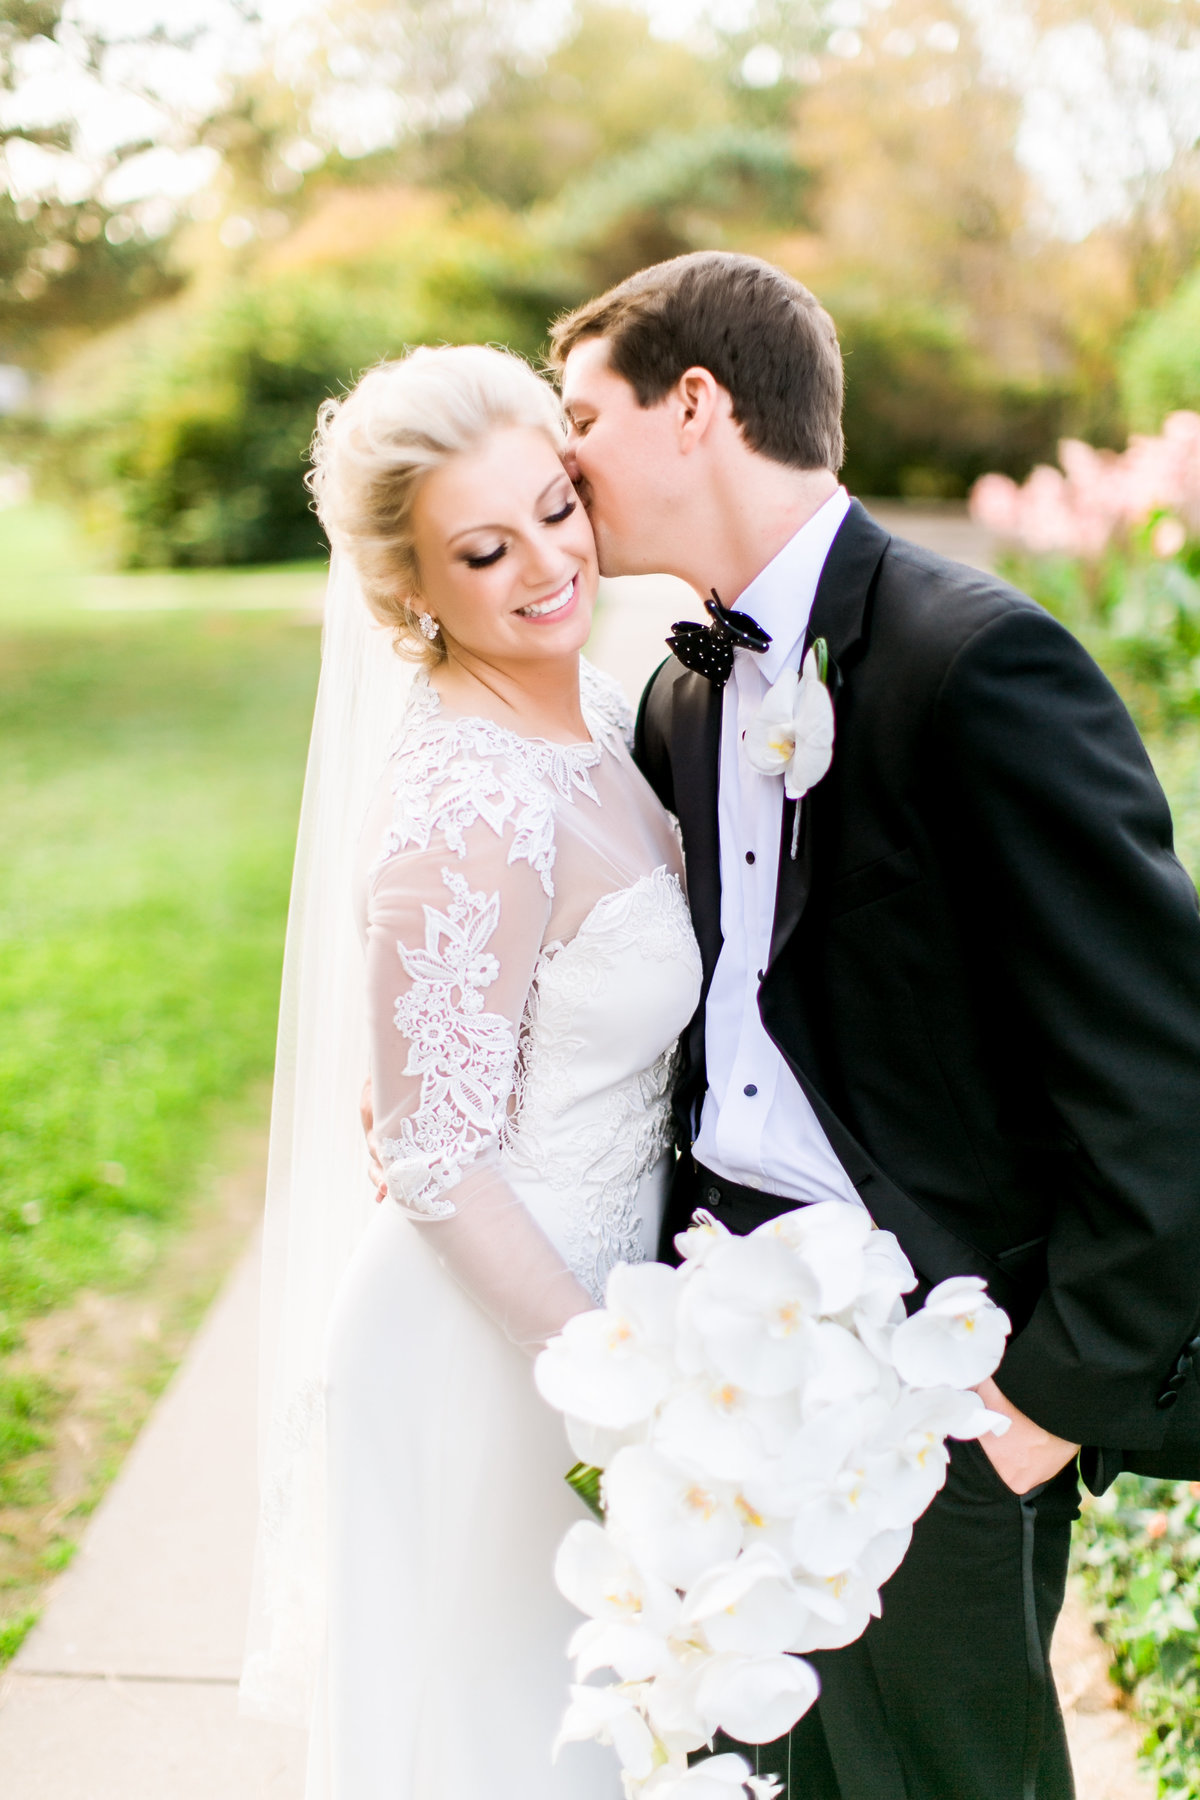 TheGalleryEventSpaceWedding_KansasCityMissouriWeddingPhotographer_AllisonMike_CatherineRhodesPhotography-4214-Edit